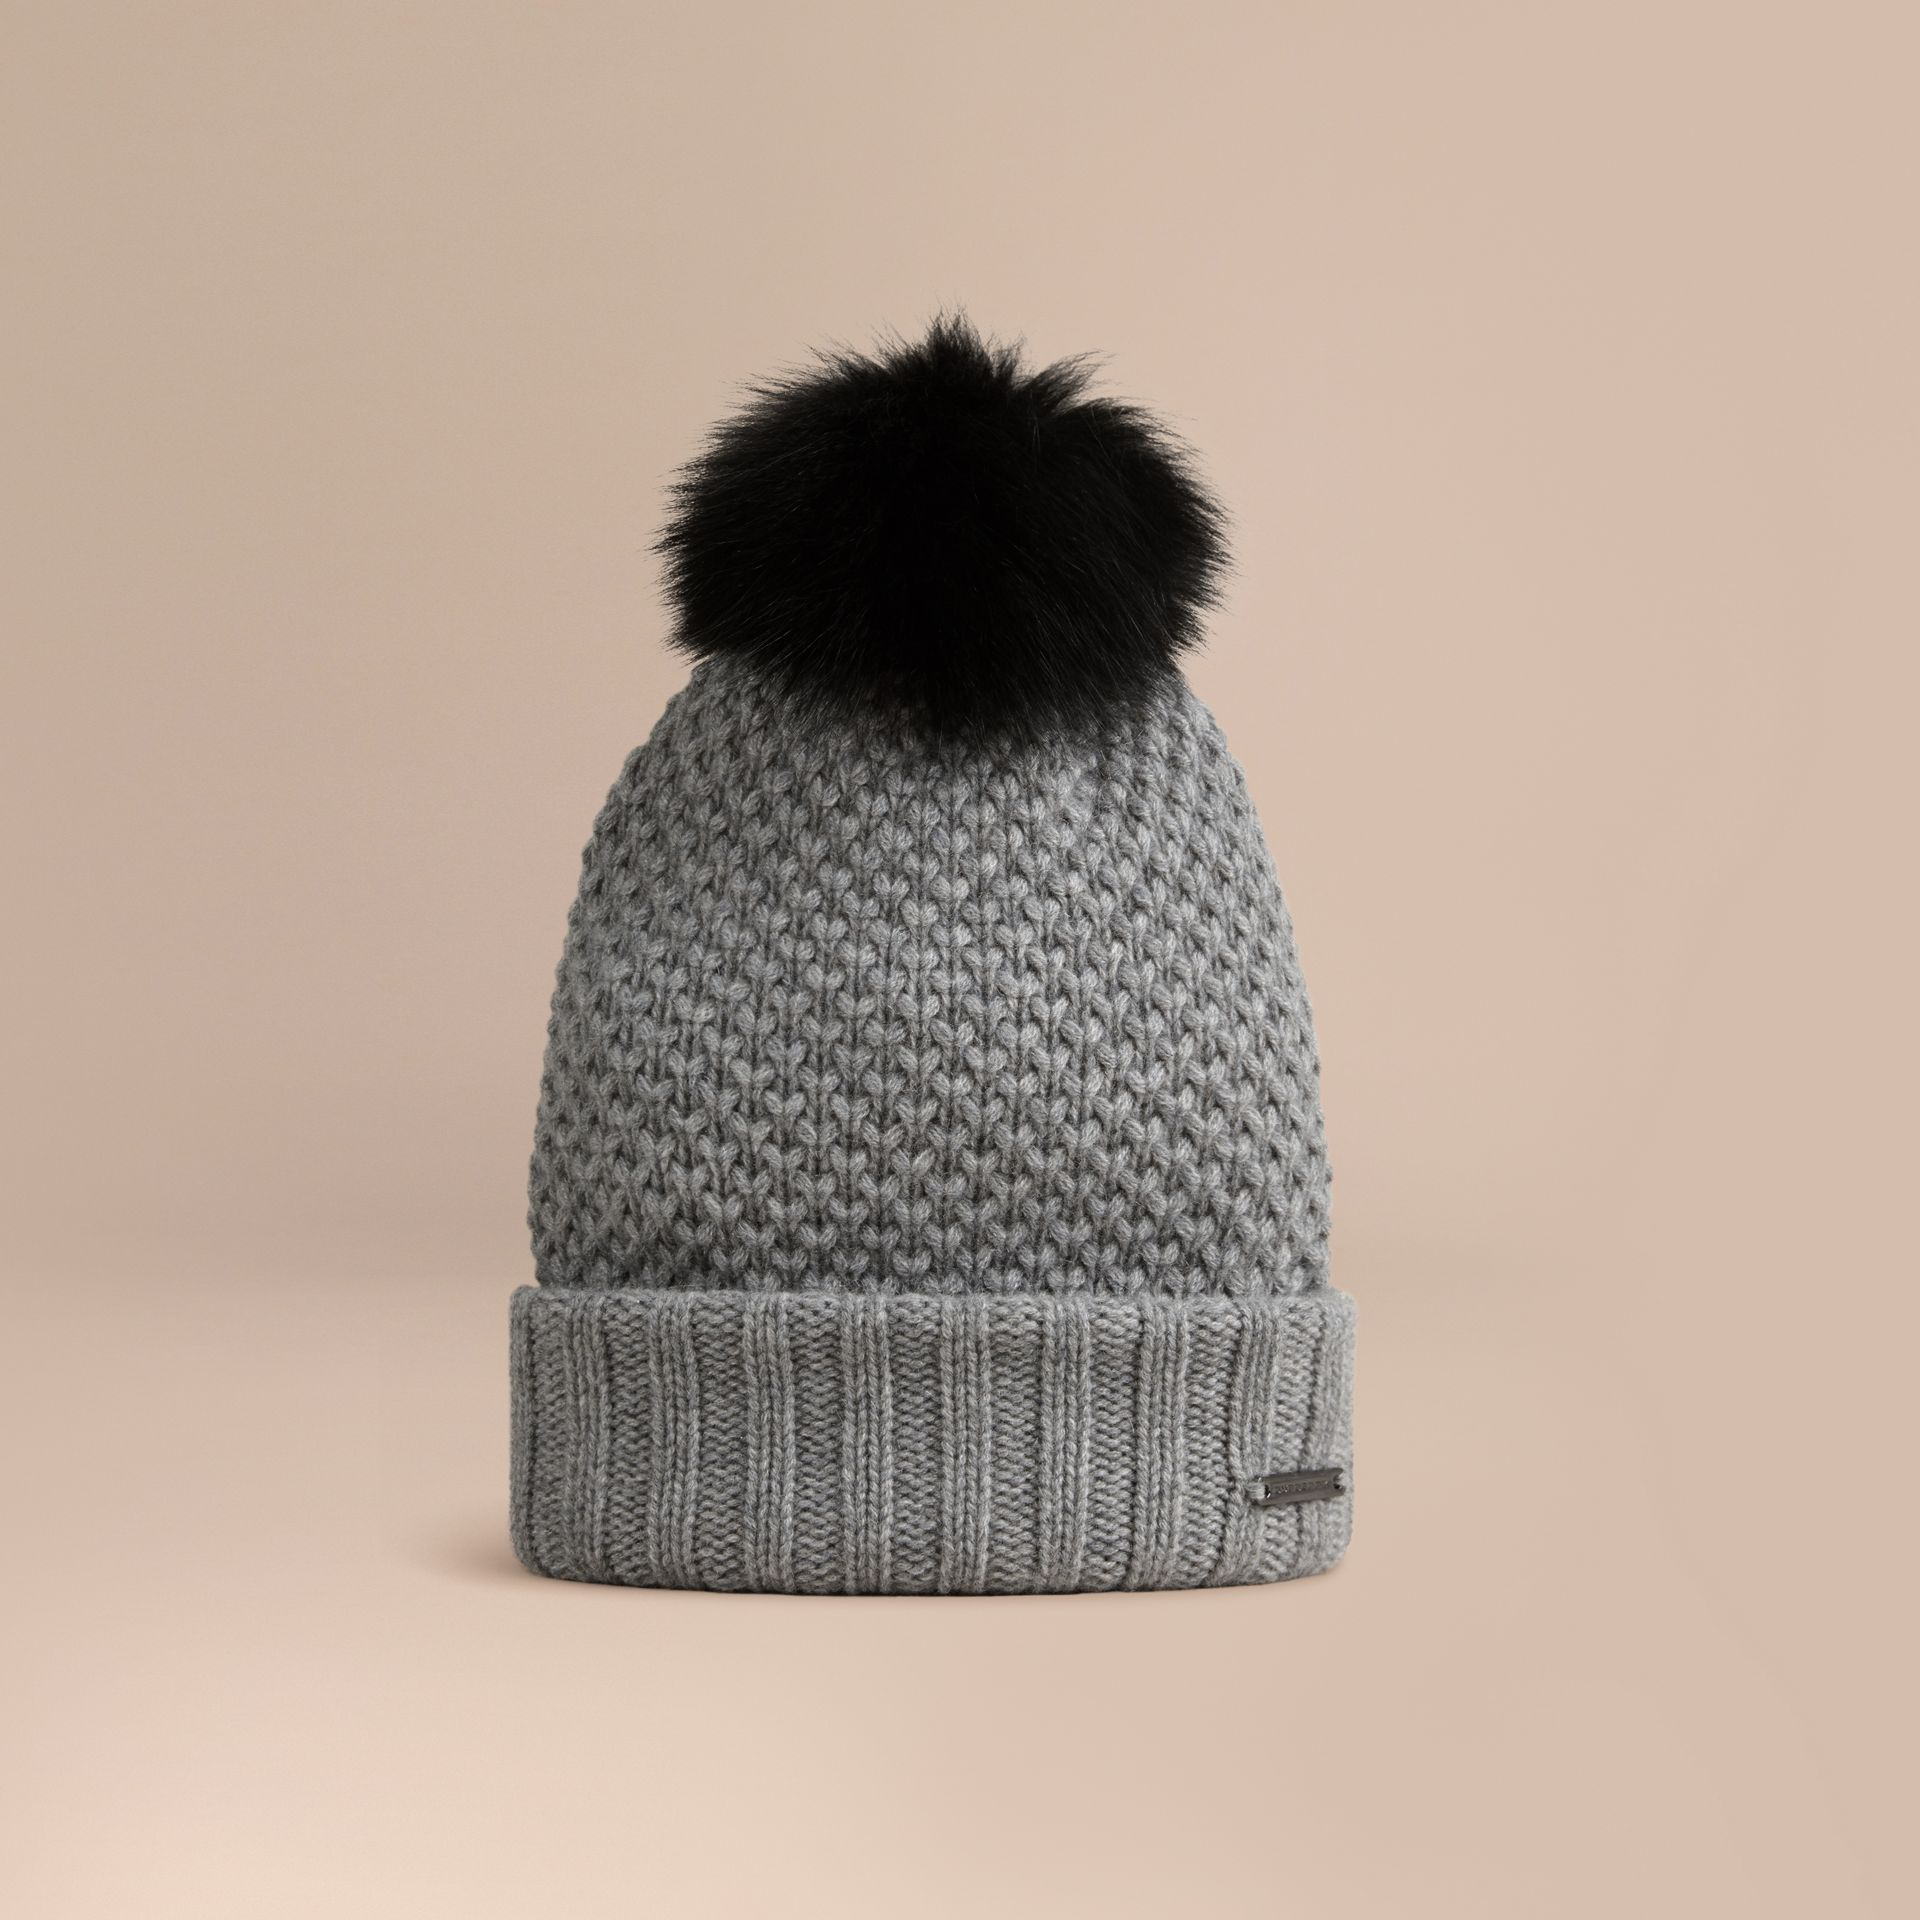 Fur Pom-Pom Beanie in Mid Grey - Women | Burberry - gallery image 1